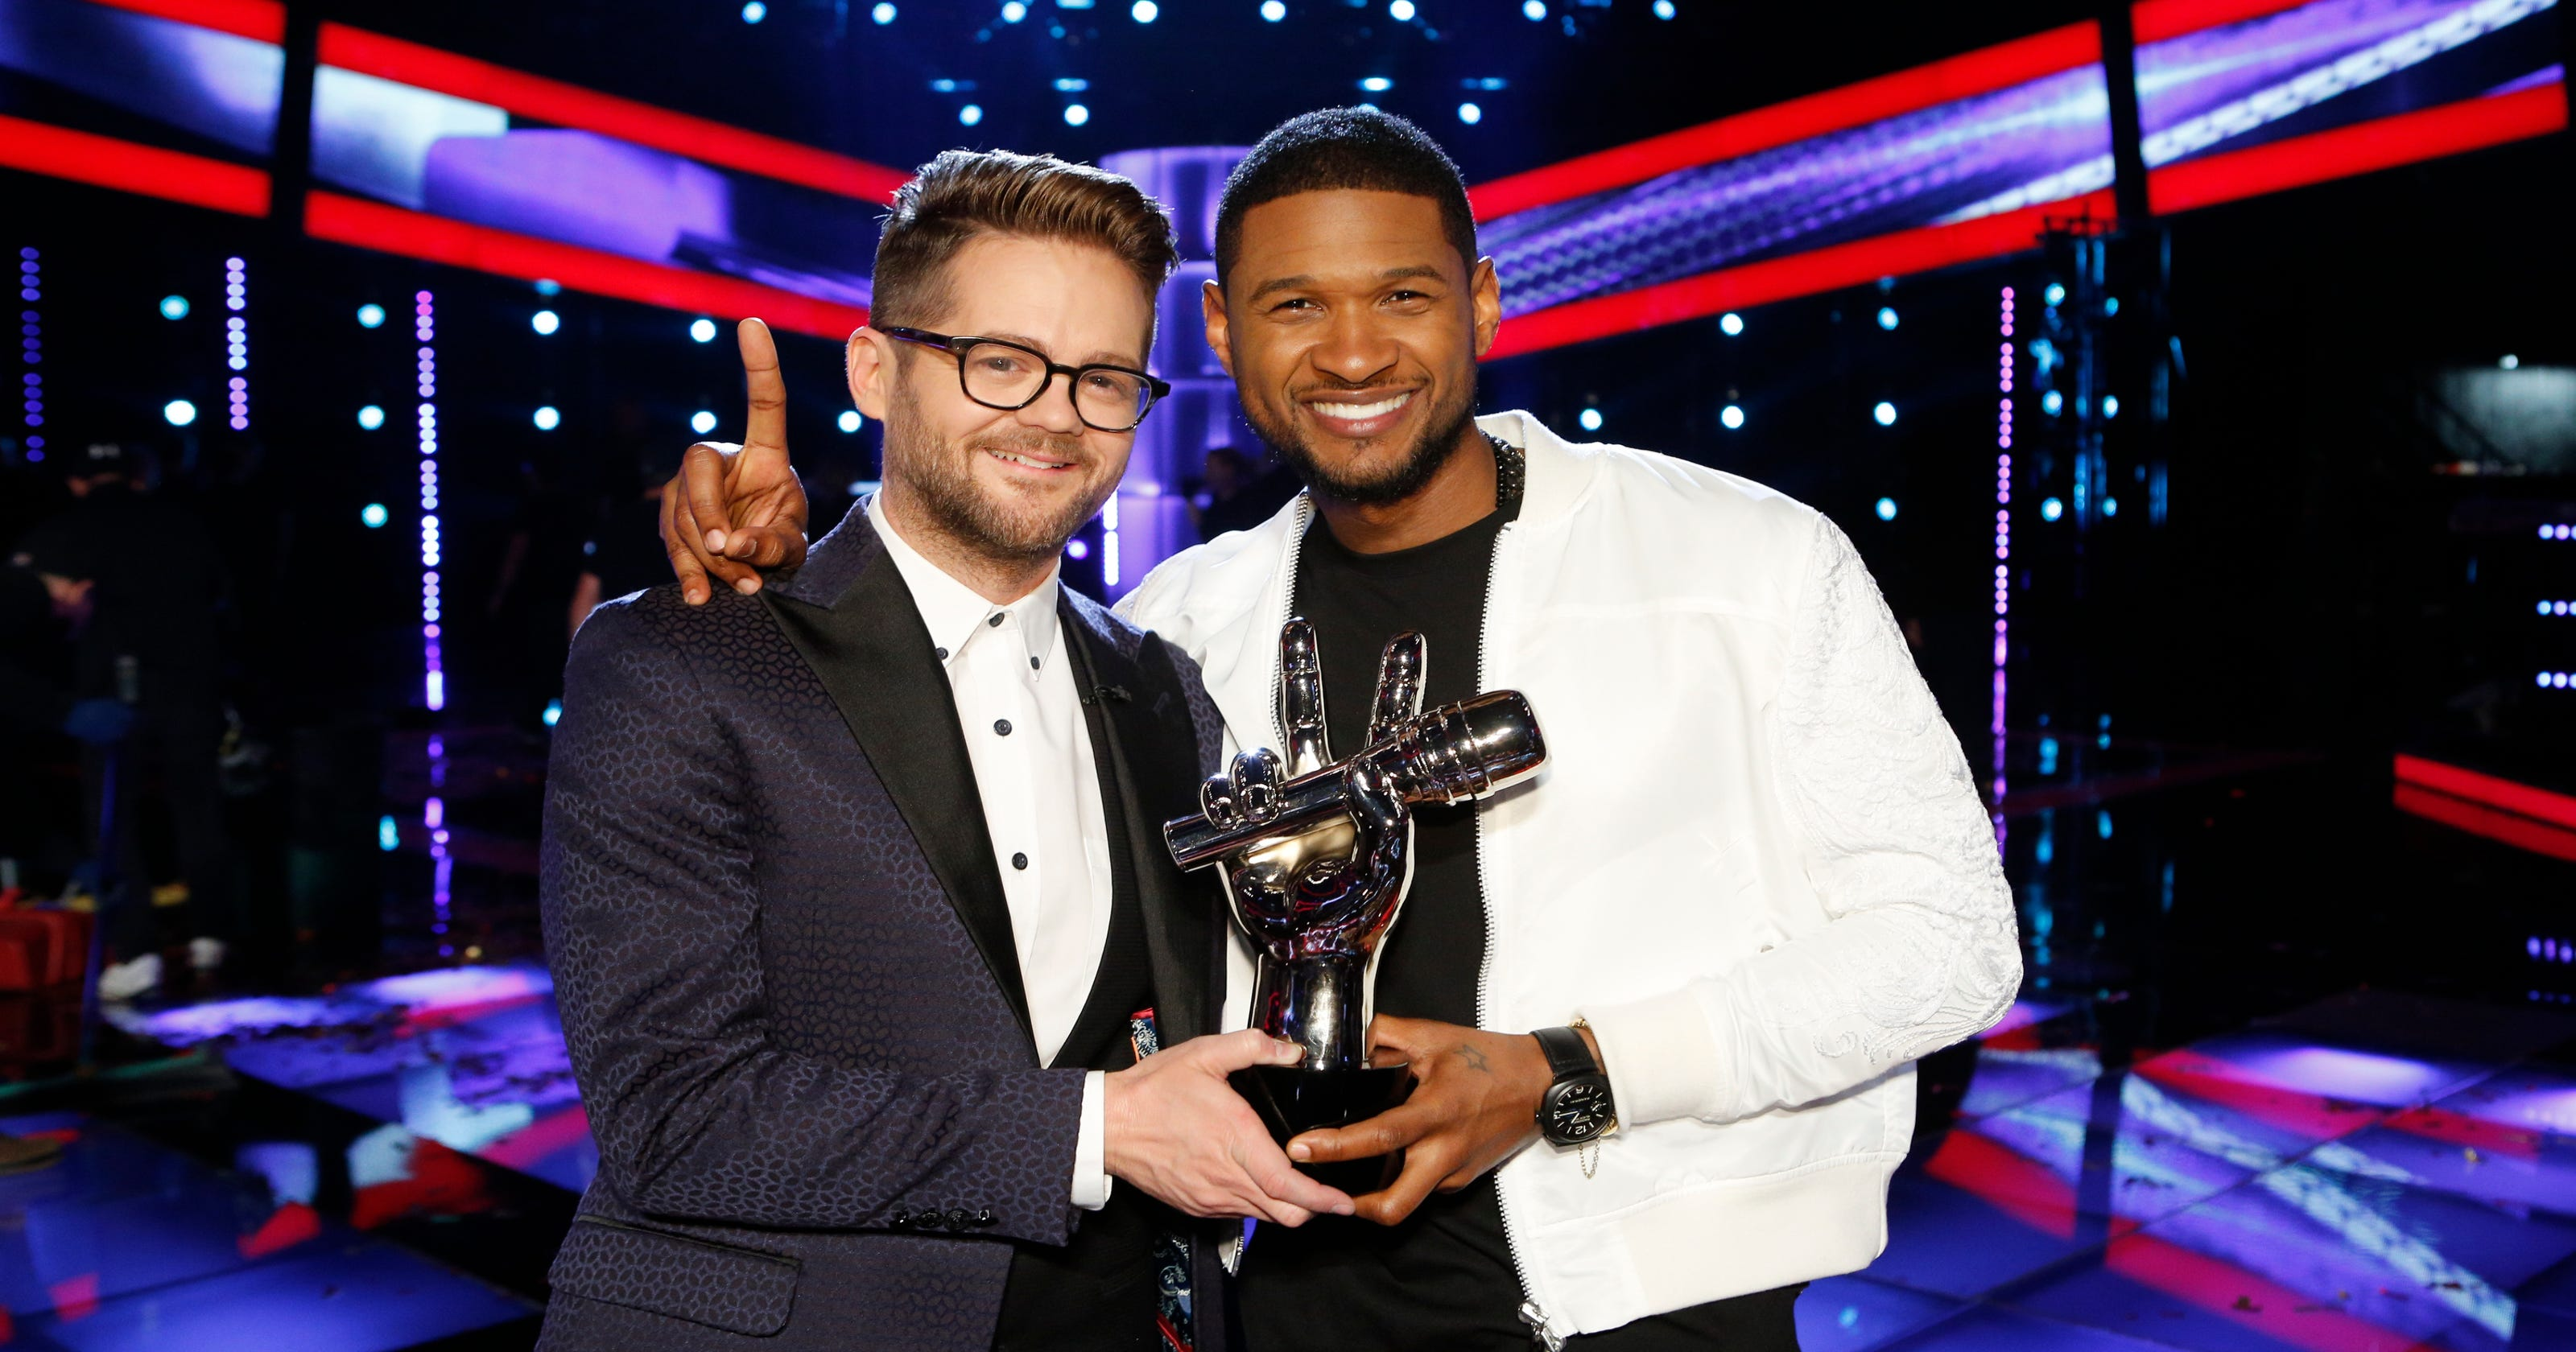 Josh Kaufman wins 'The Voice'